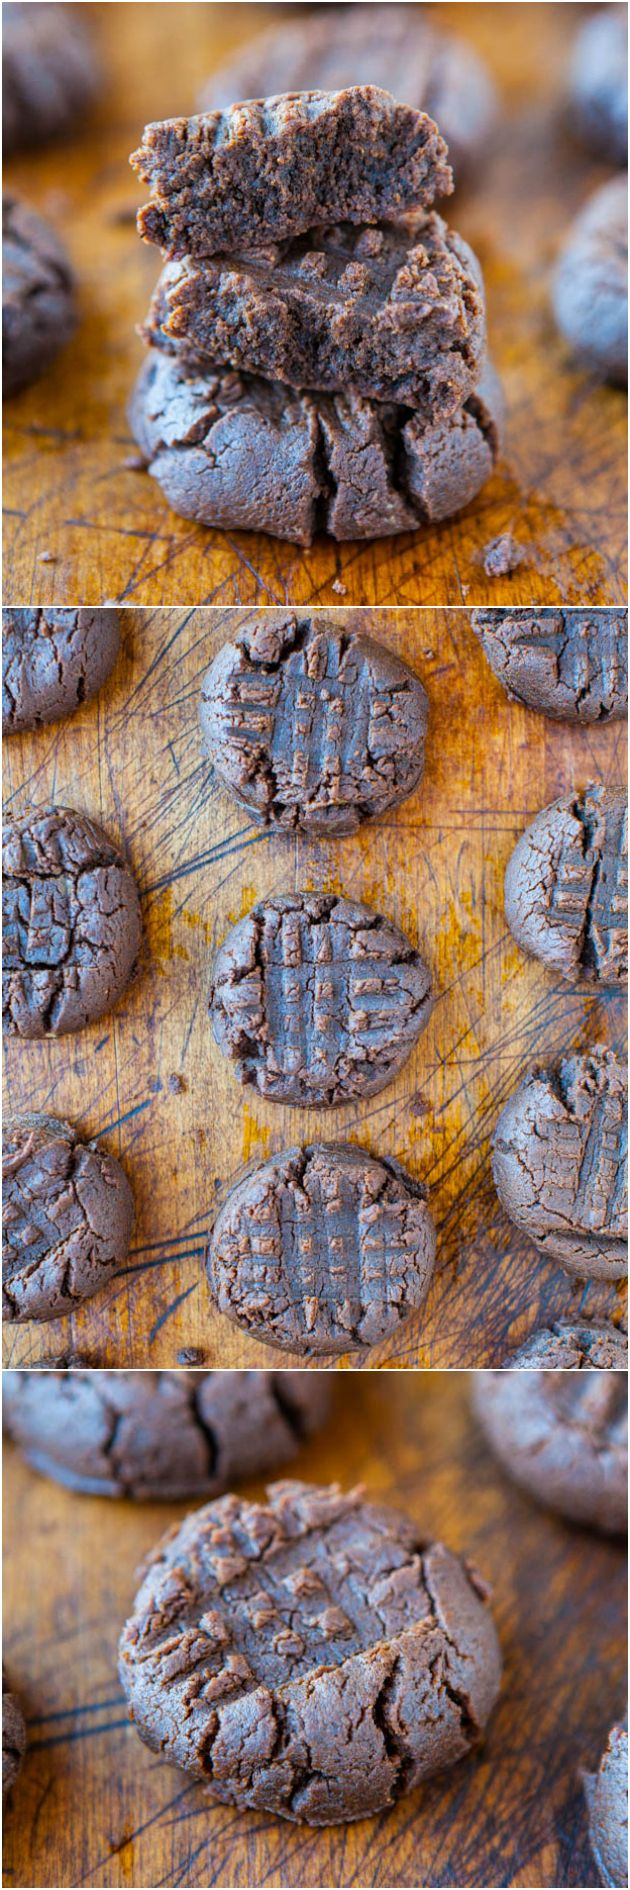 Thick and Soft Chocolate Peanut Butter Cookies (GF) - NO butter & NO flour used in these thick cookies that taste like peanut butter brownies!